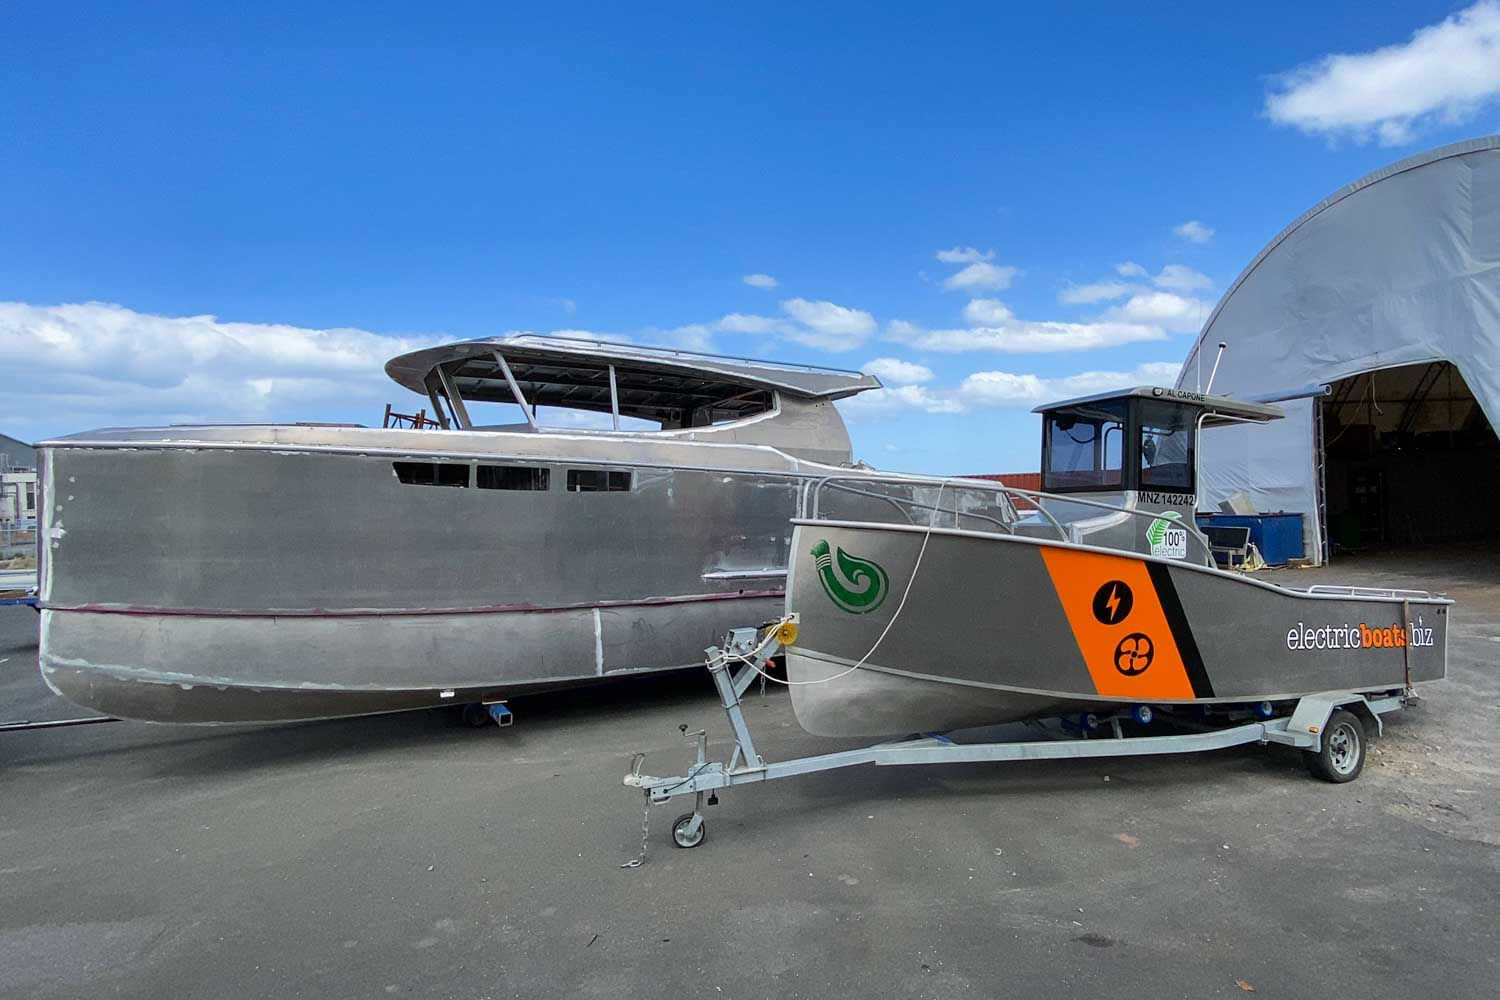 Electric Boats Hybrid Catamaran and Electric